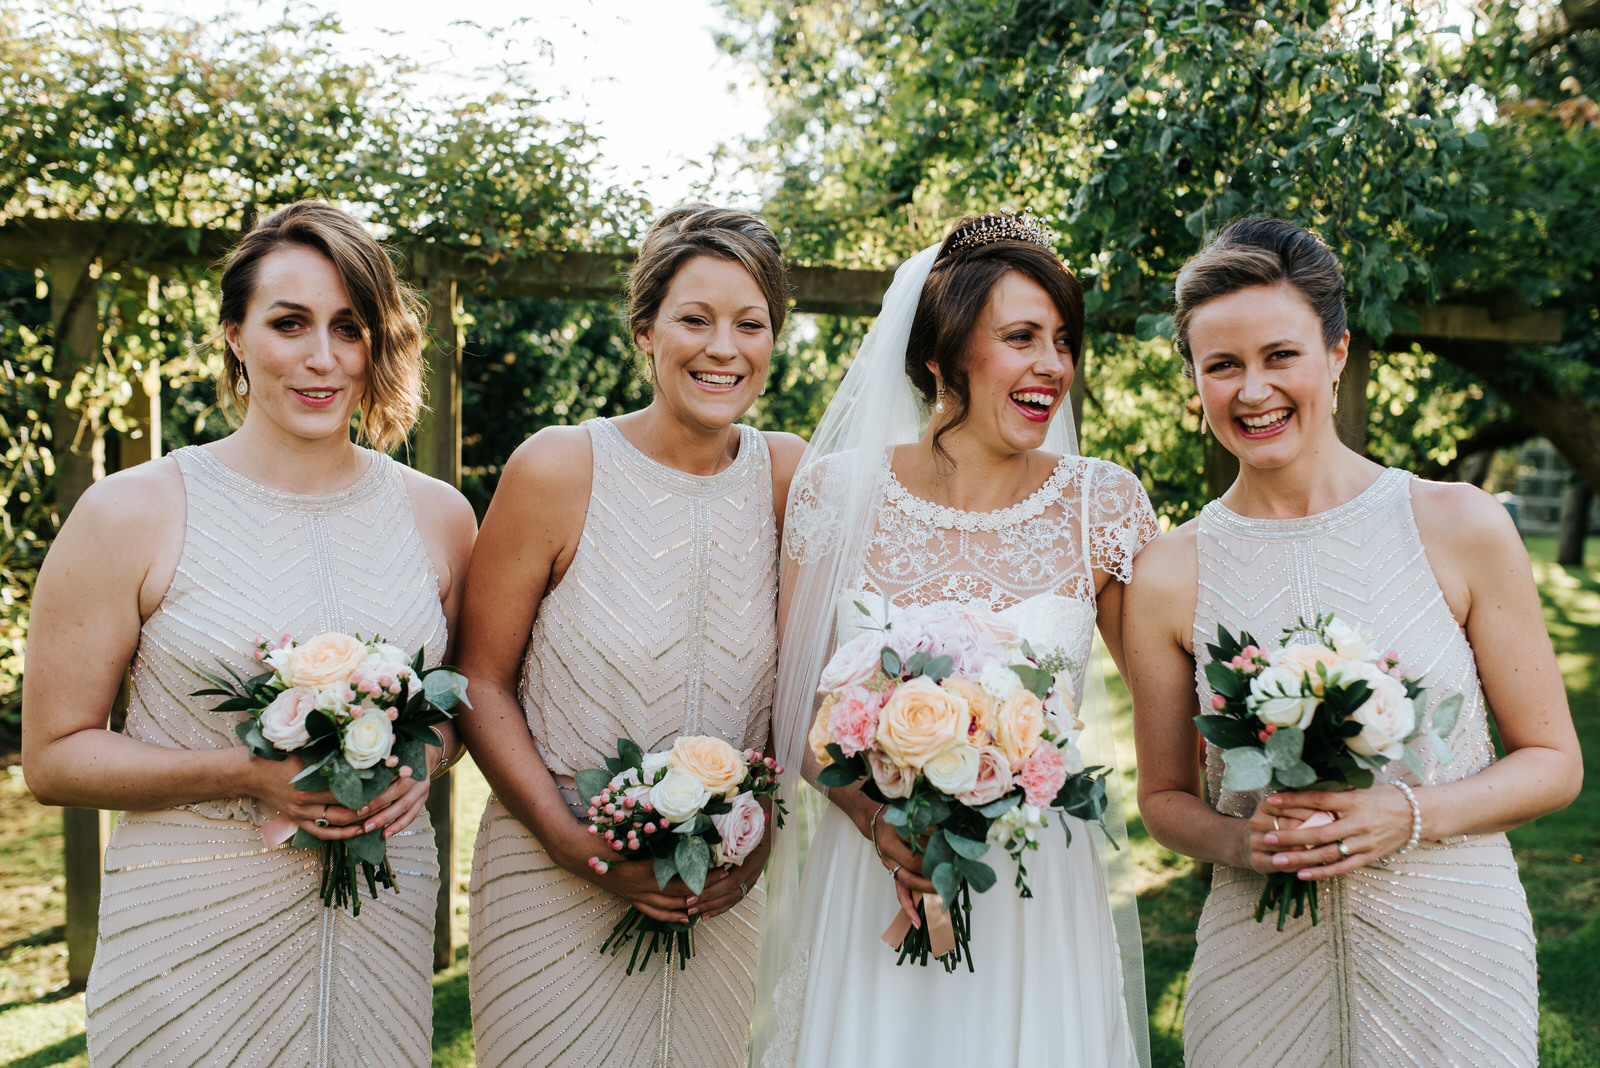 Bride and Bridesmaids smile at camera in stunning garden